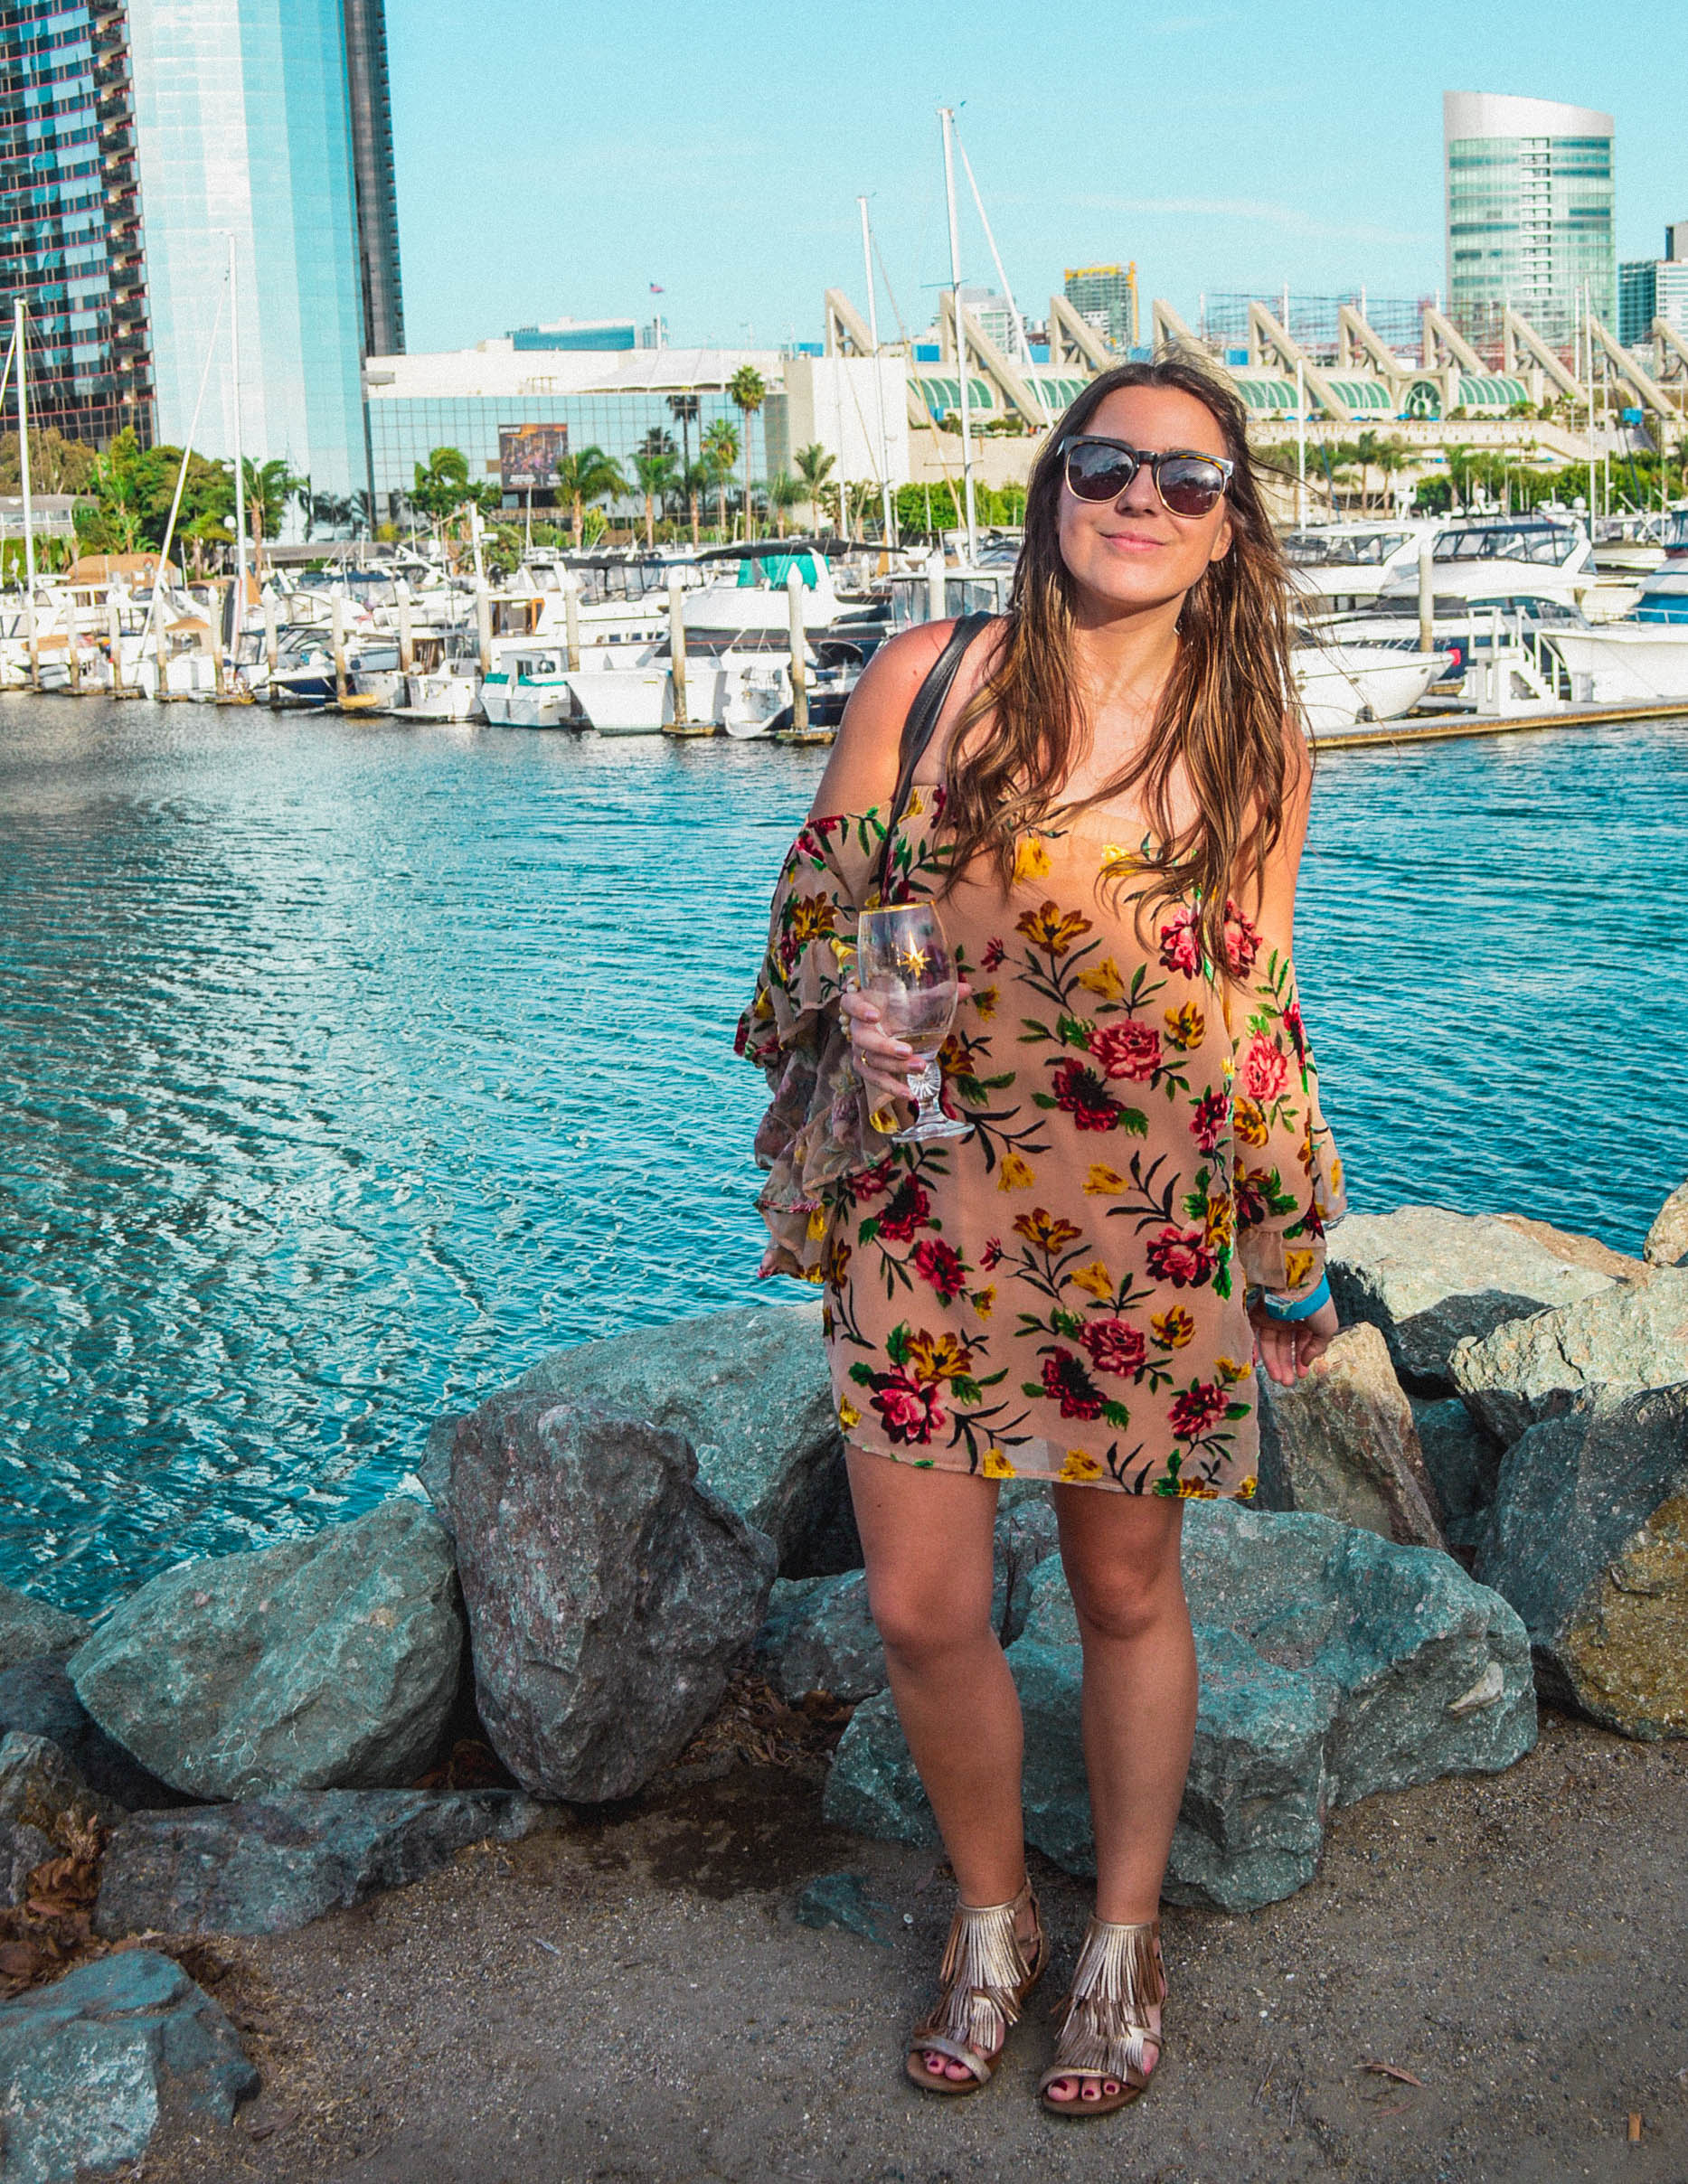 San Diego downtown wine festival - Travel | 2017 Travel Year in Review + Travel and Blog Goals for 2018 | goseekexplore.com